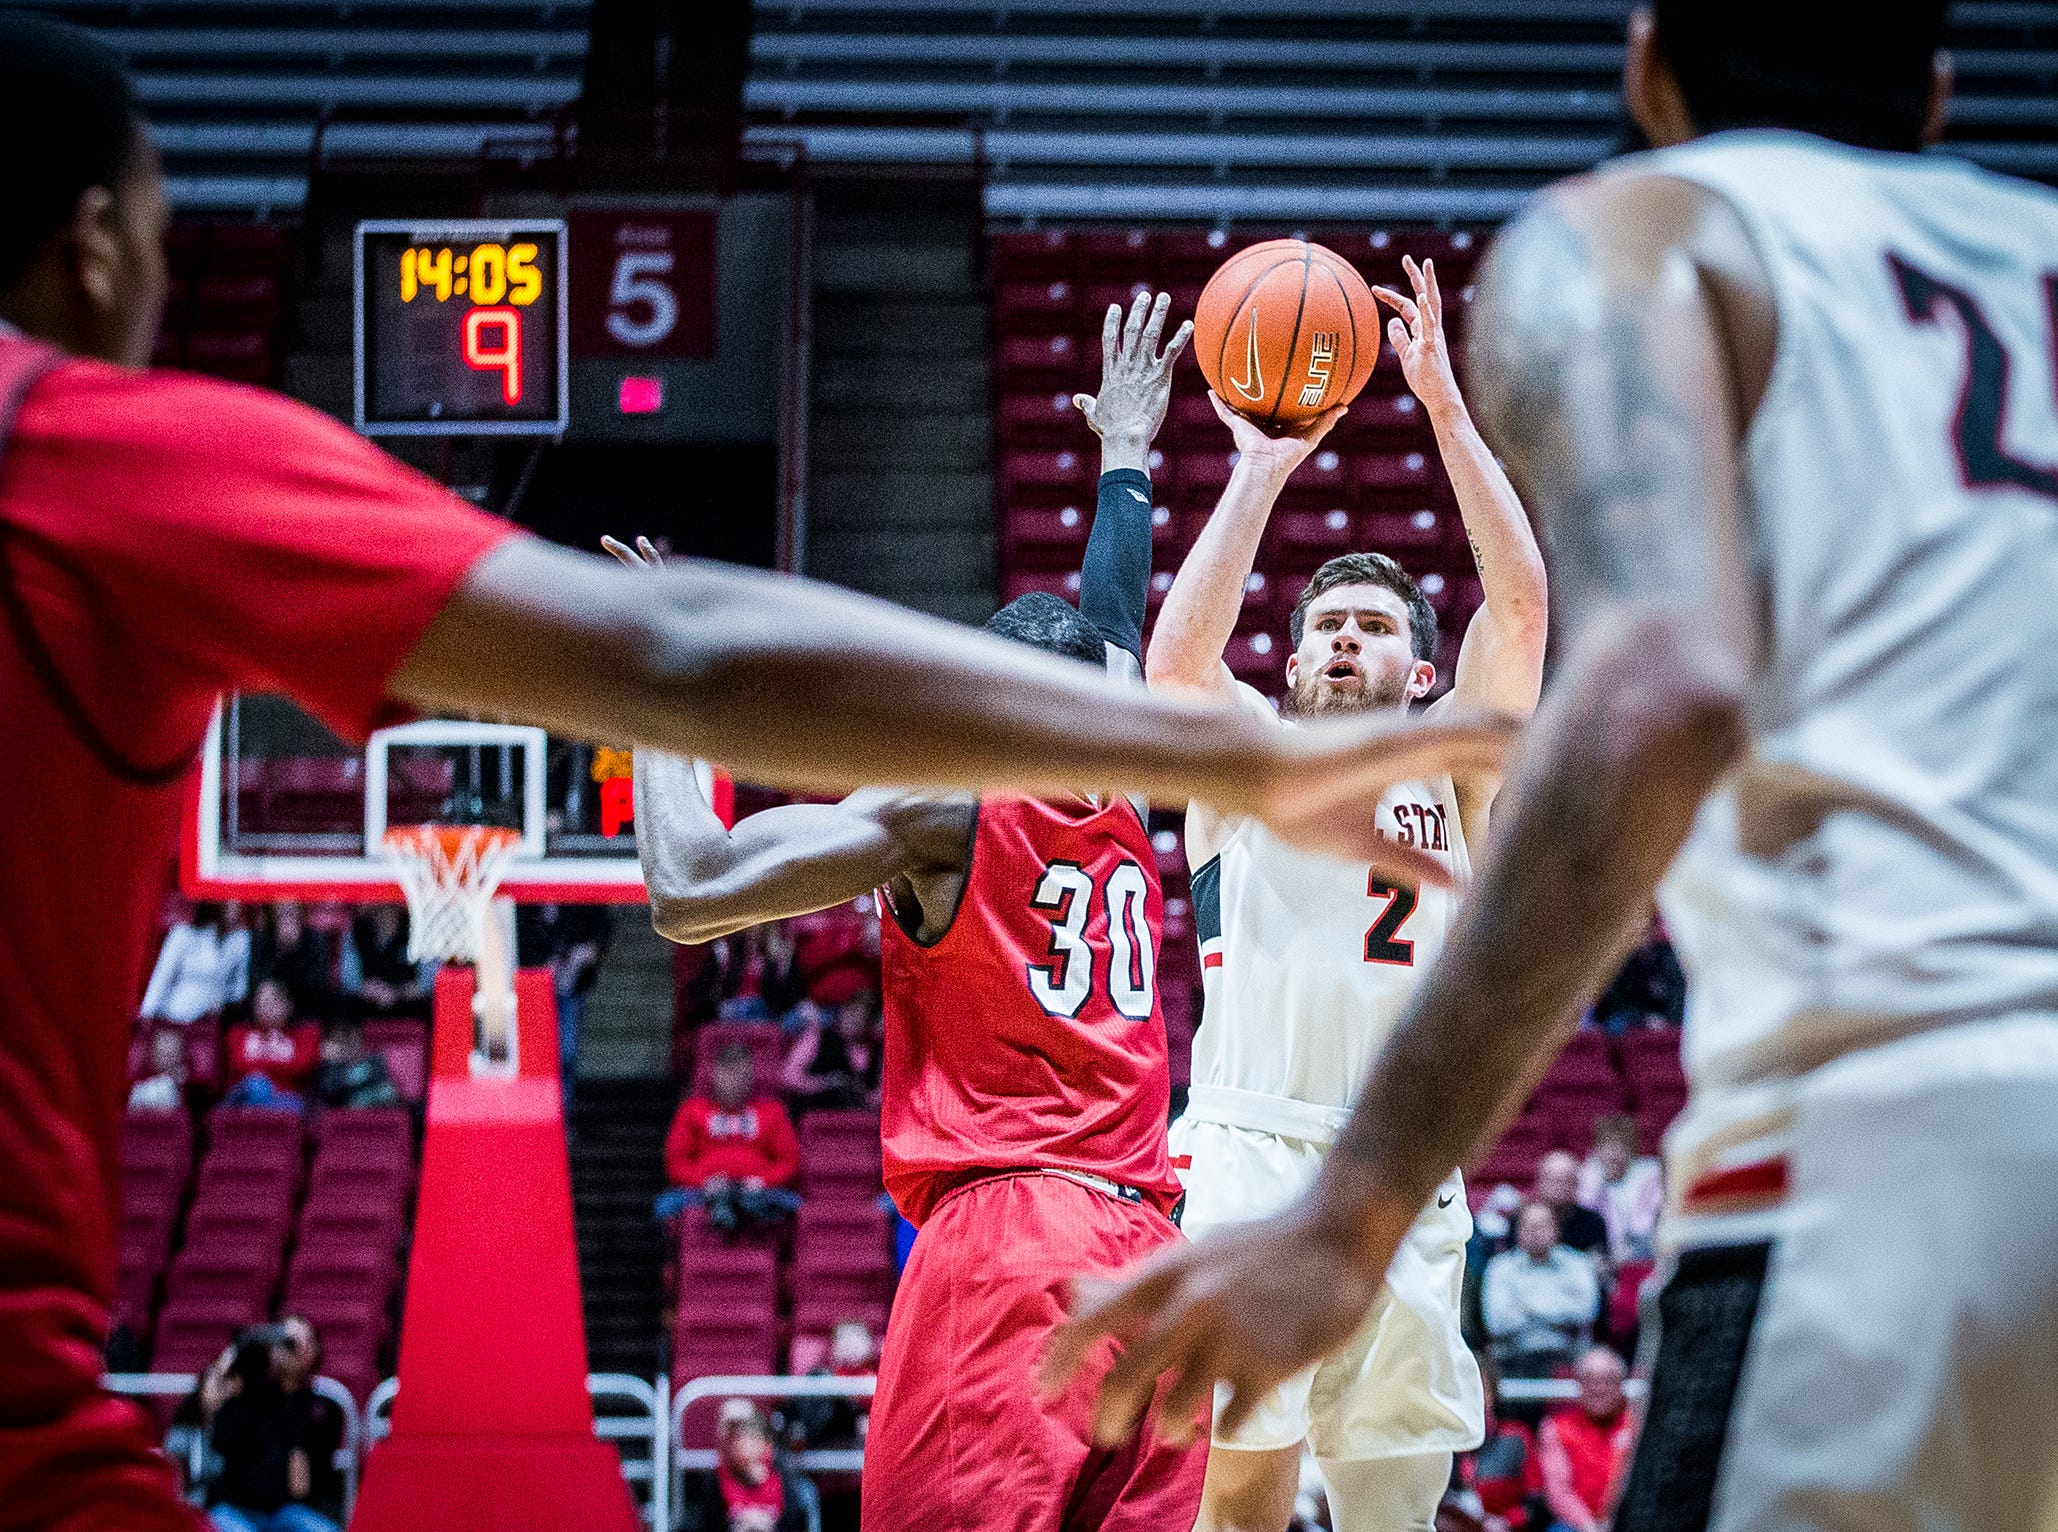 Ball State's Tayler Persons shoots past Miami's defense during their game at Worthen Arena Tuesday, Jan. 22, 2018.